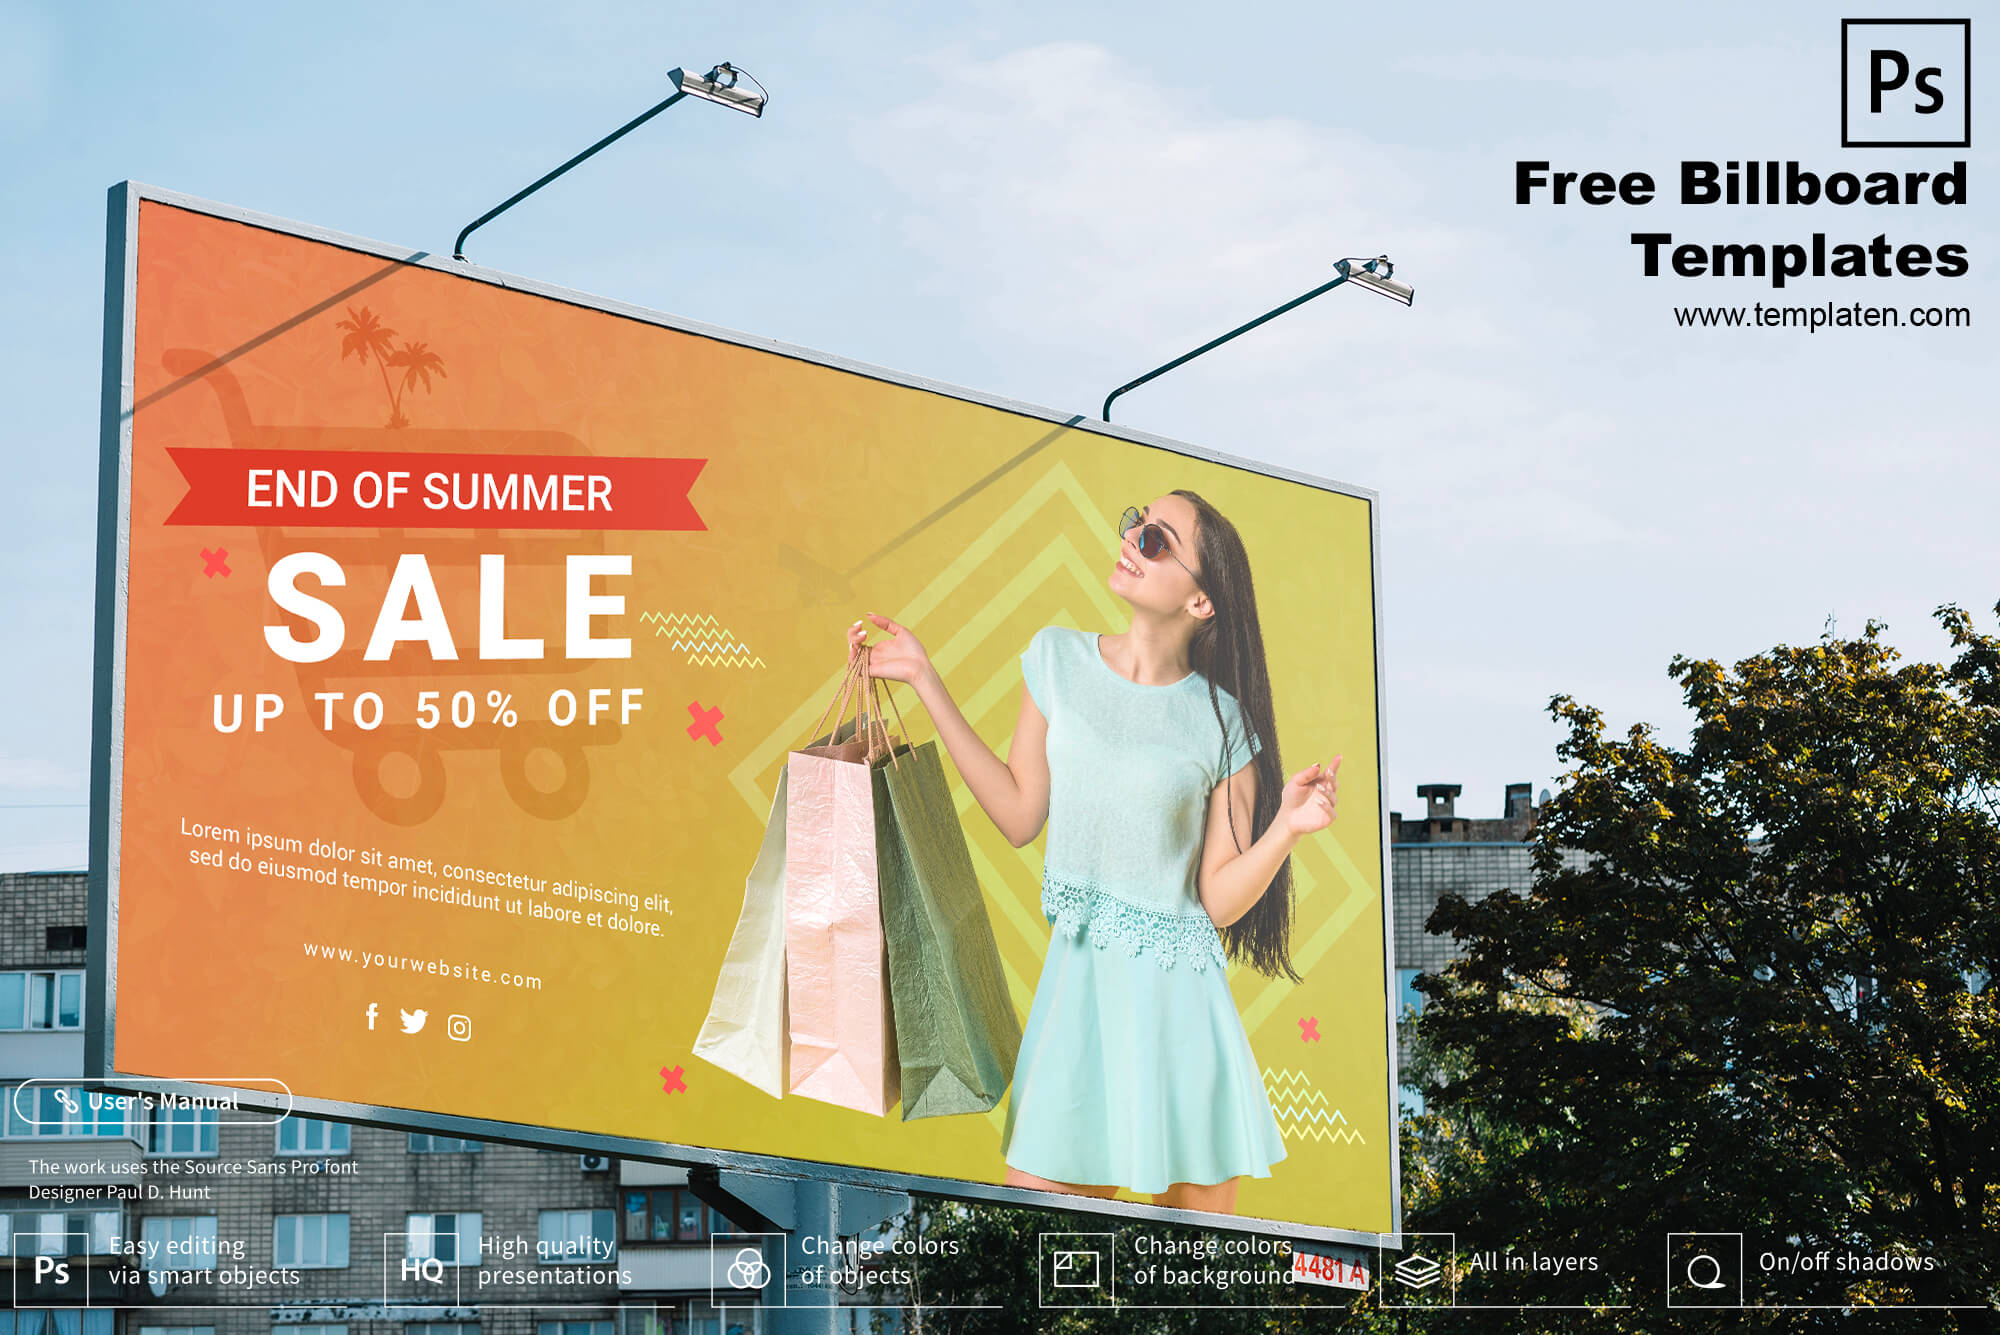 Free Billboard PSD Template